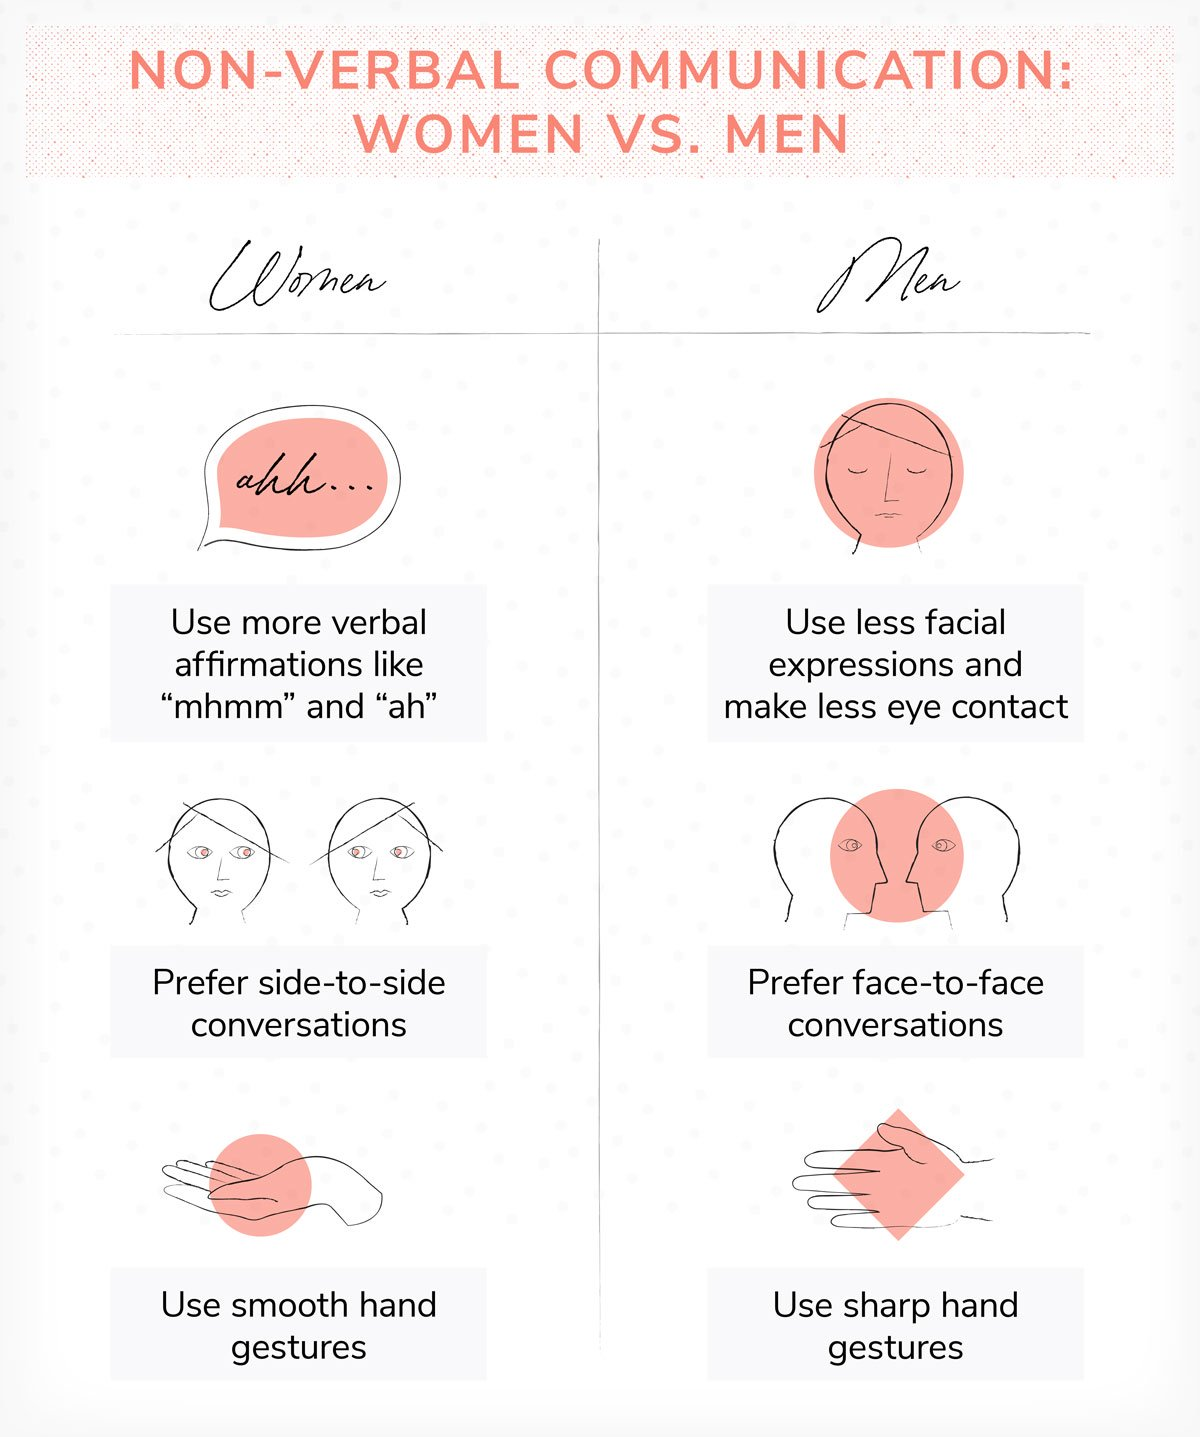 drawings of differences in women and men making eye contact